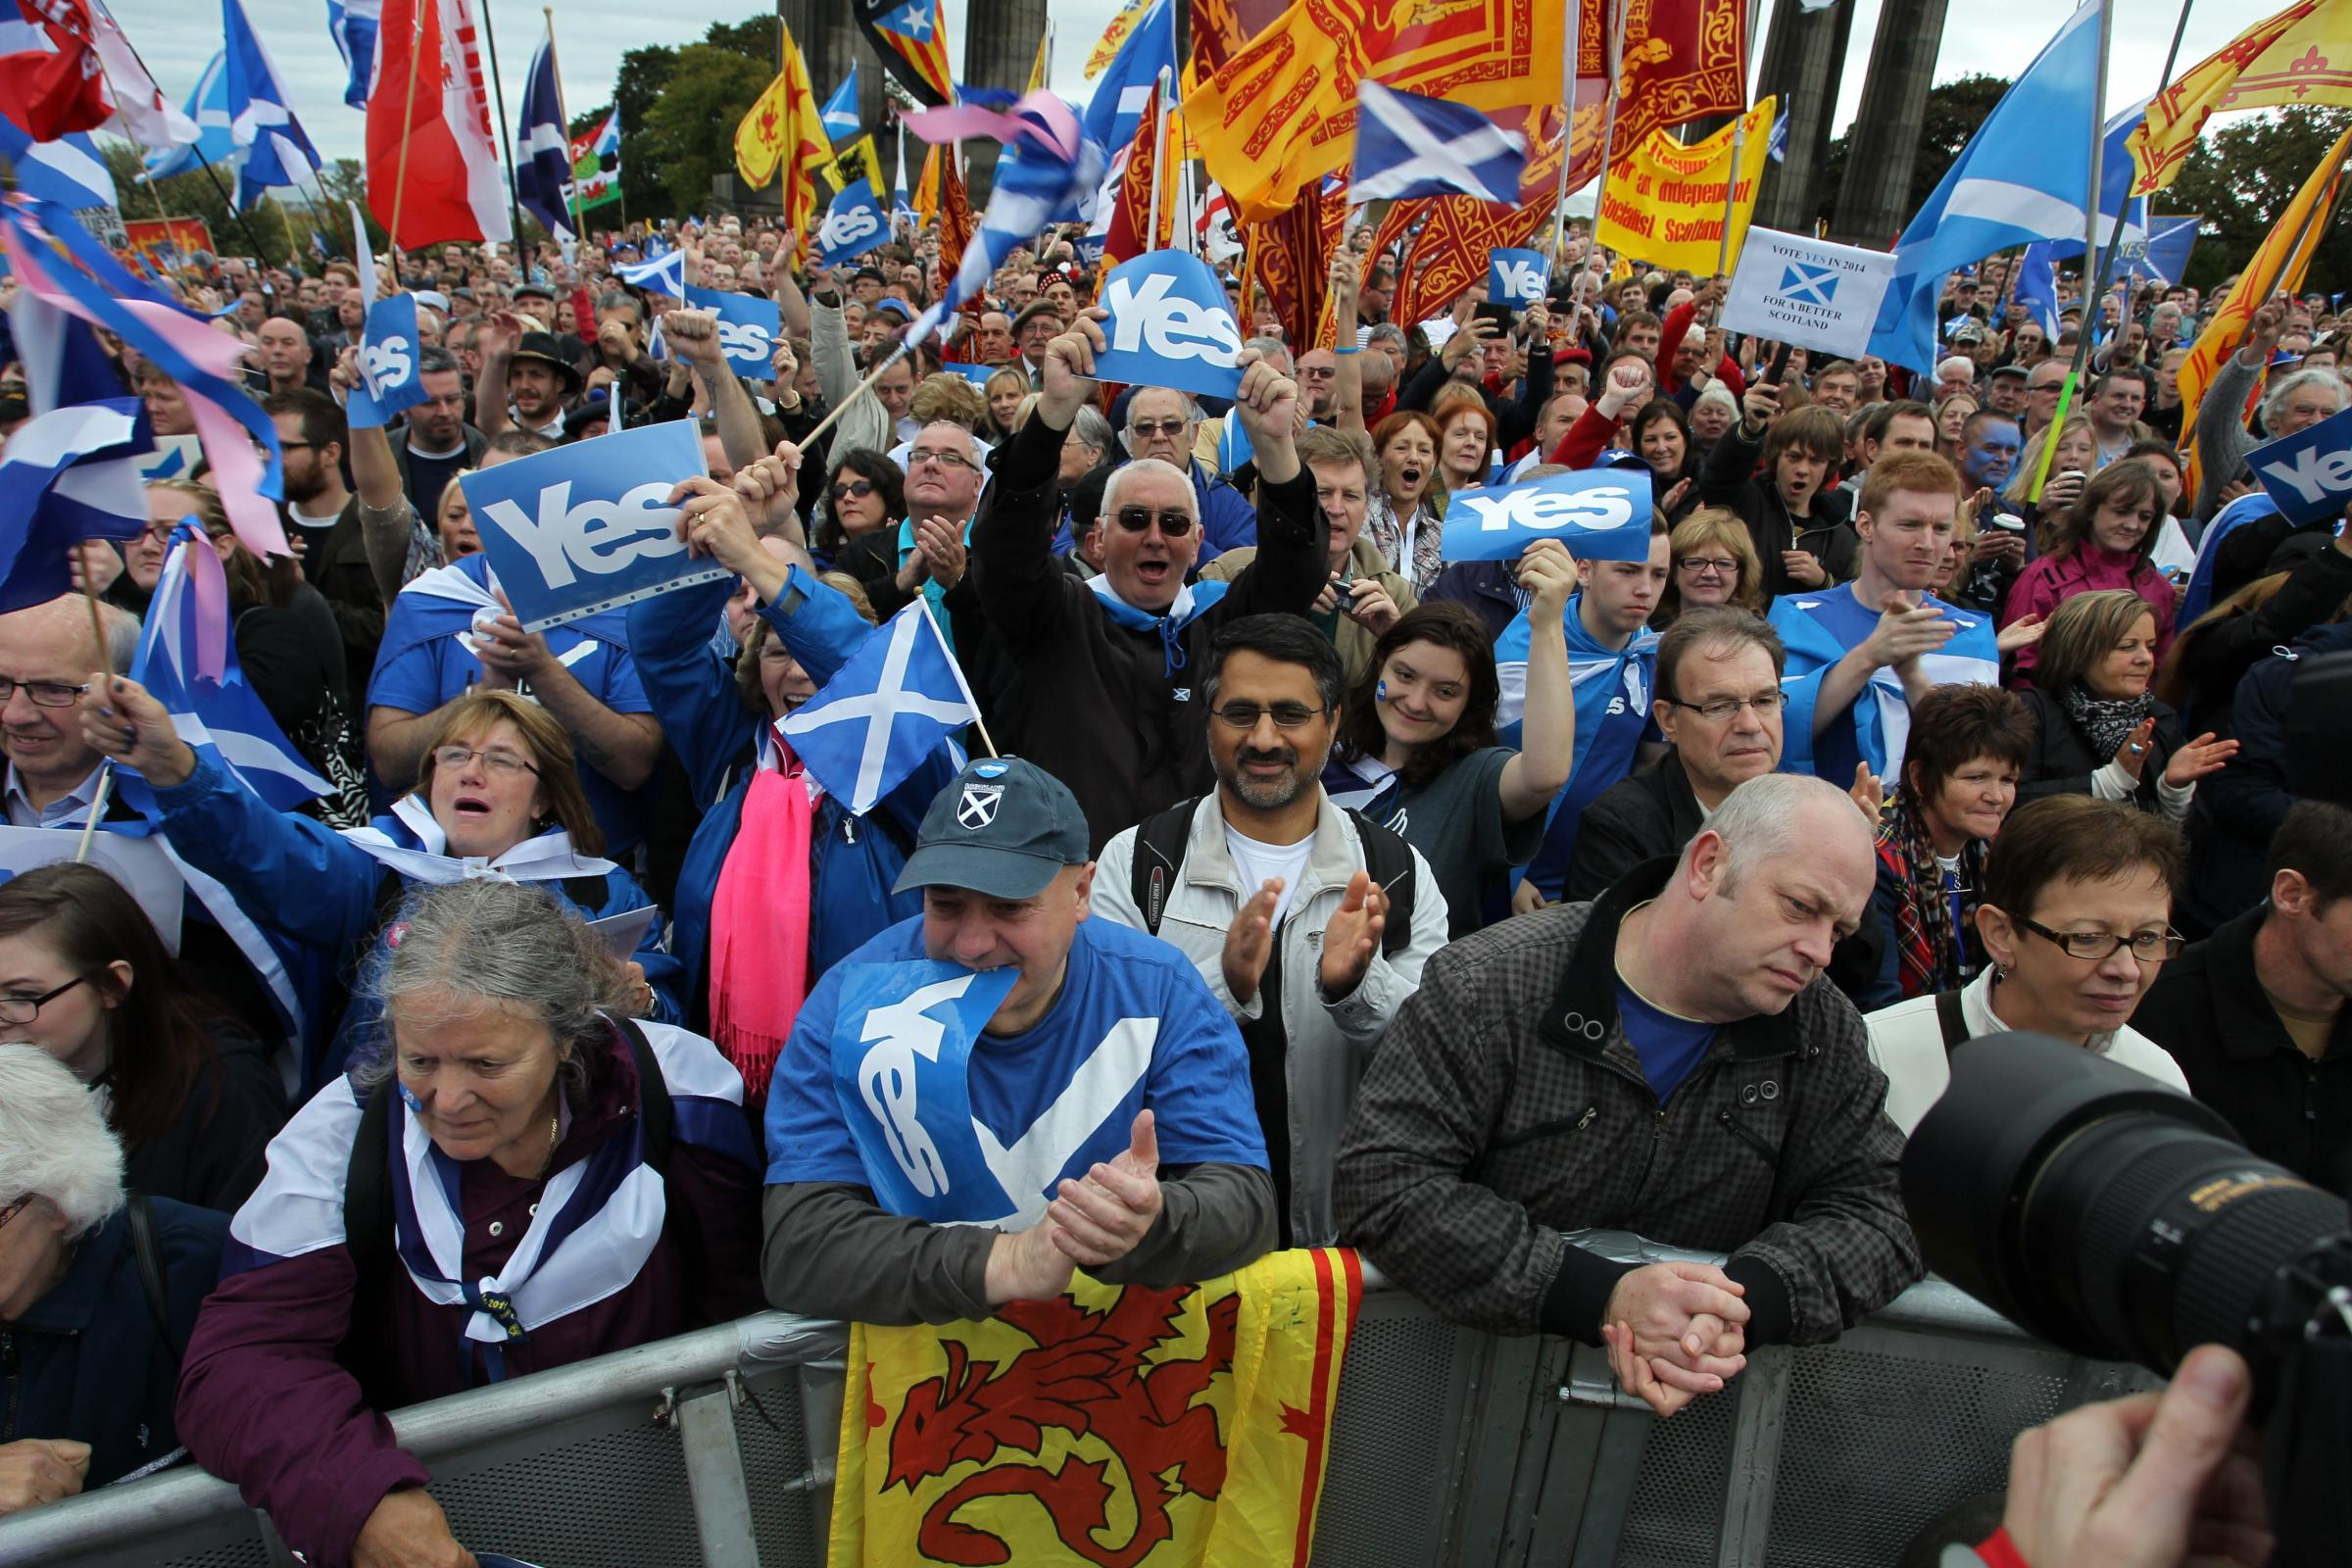 Scotland could do so much more as an independent nation, free from Tory economic mishaps